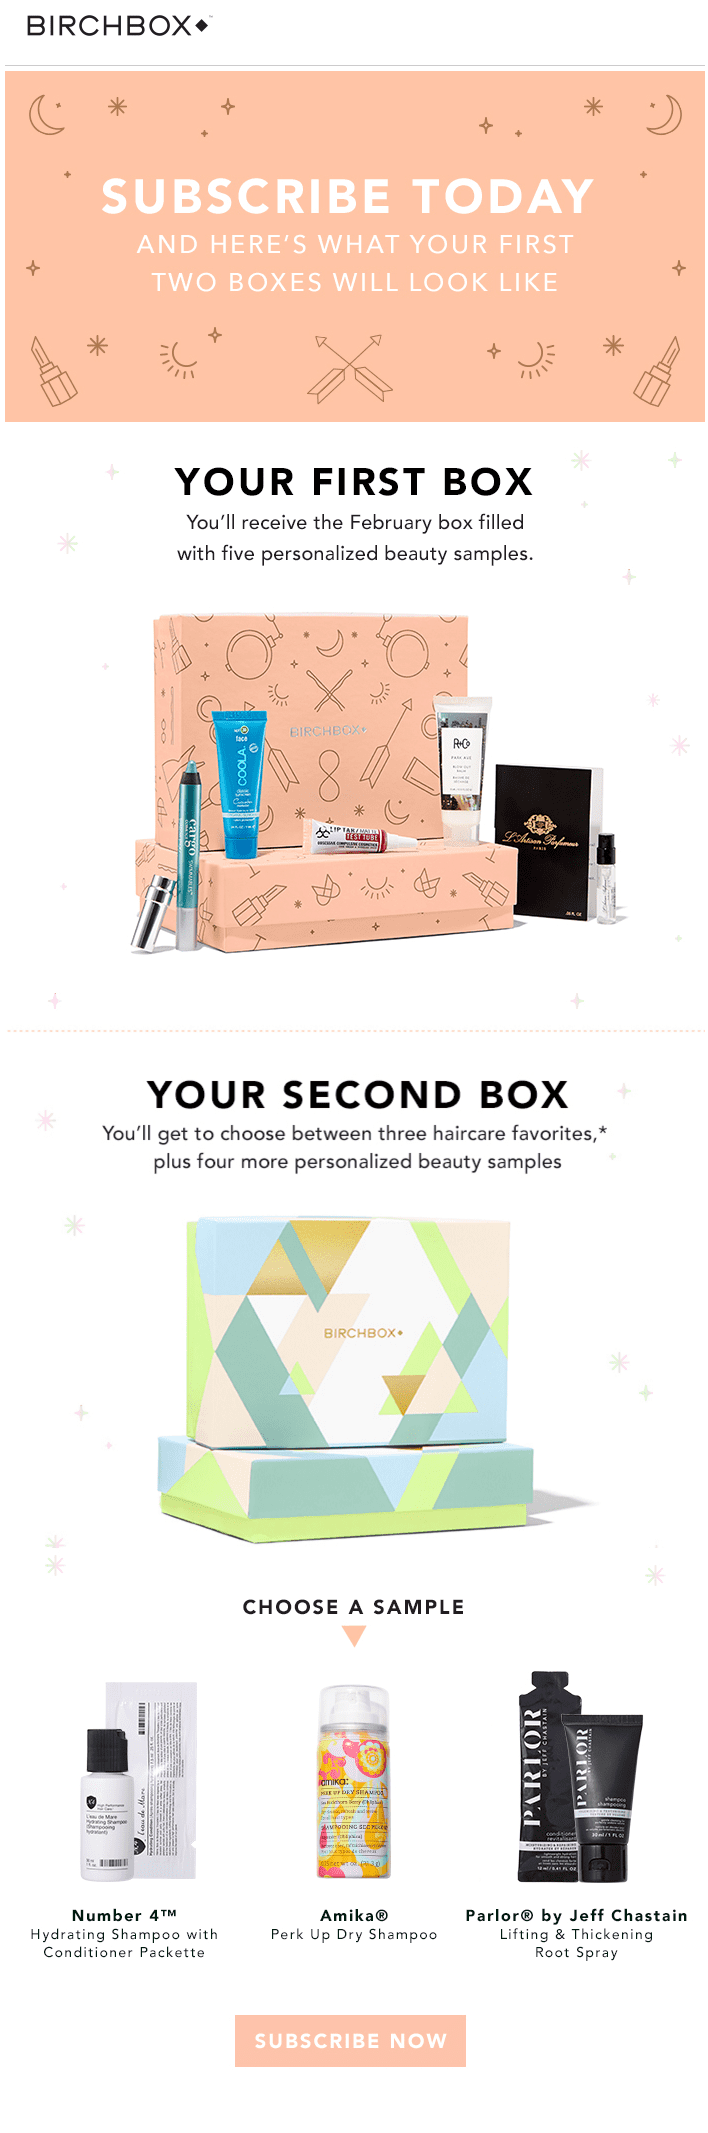 Birchbox click-through rate vs click-to-open rate